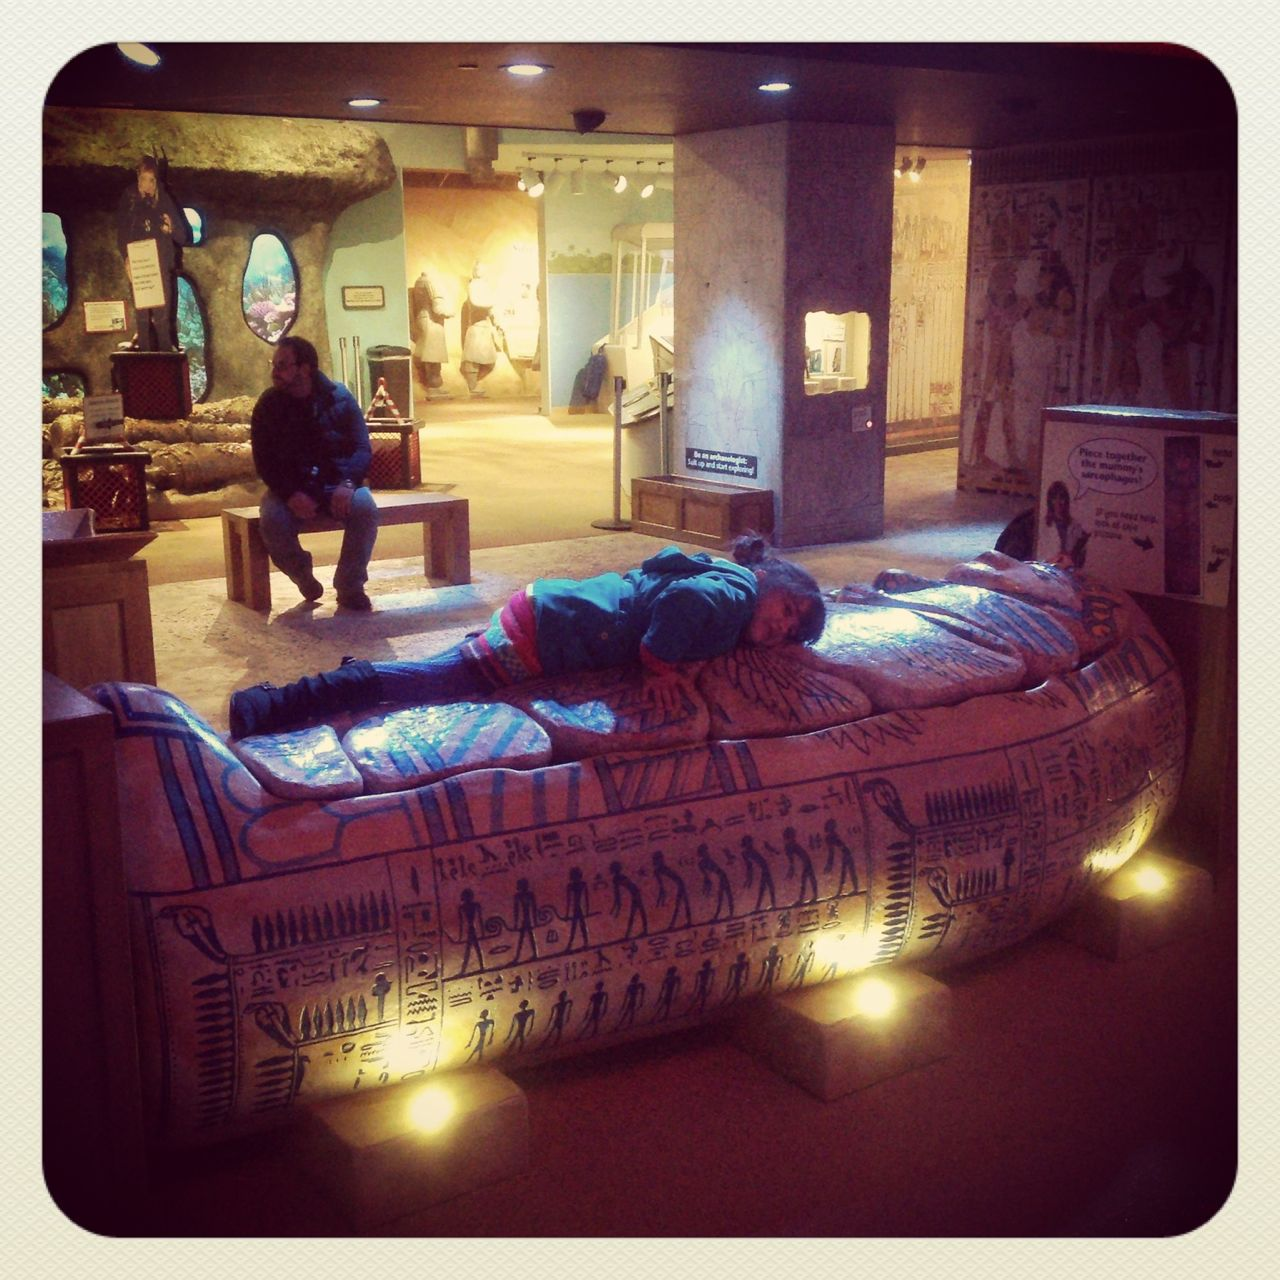 In the treasures & archeology section, there was a sarcophagus that was a puzzle...